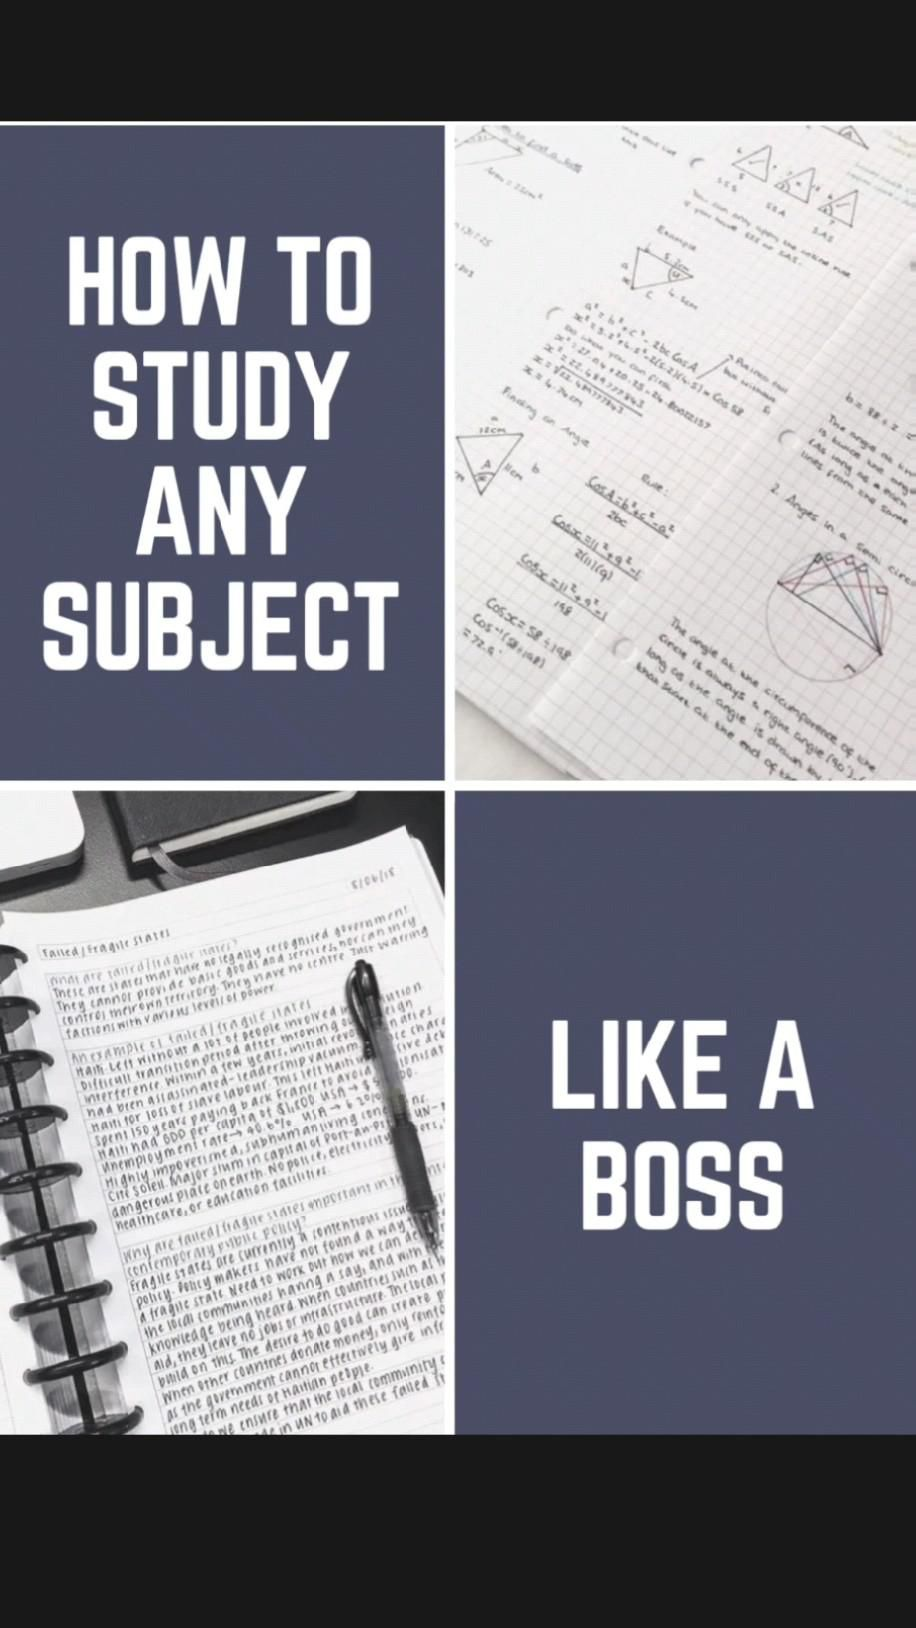 How to #study any subject like a boss.